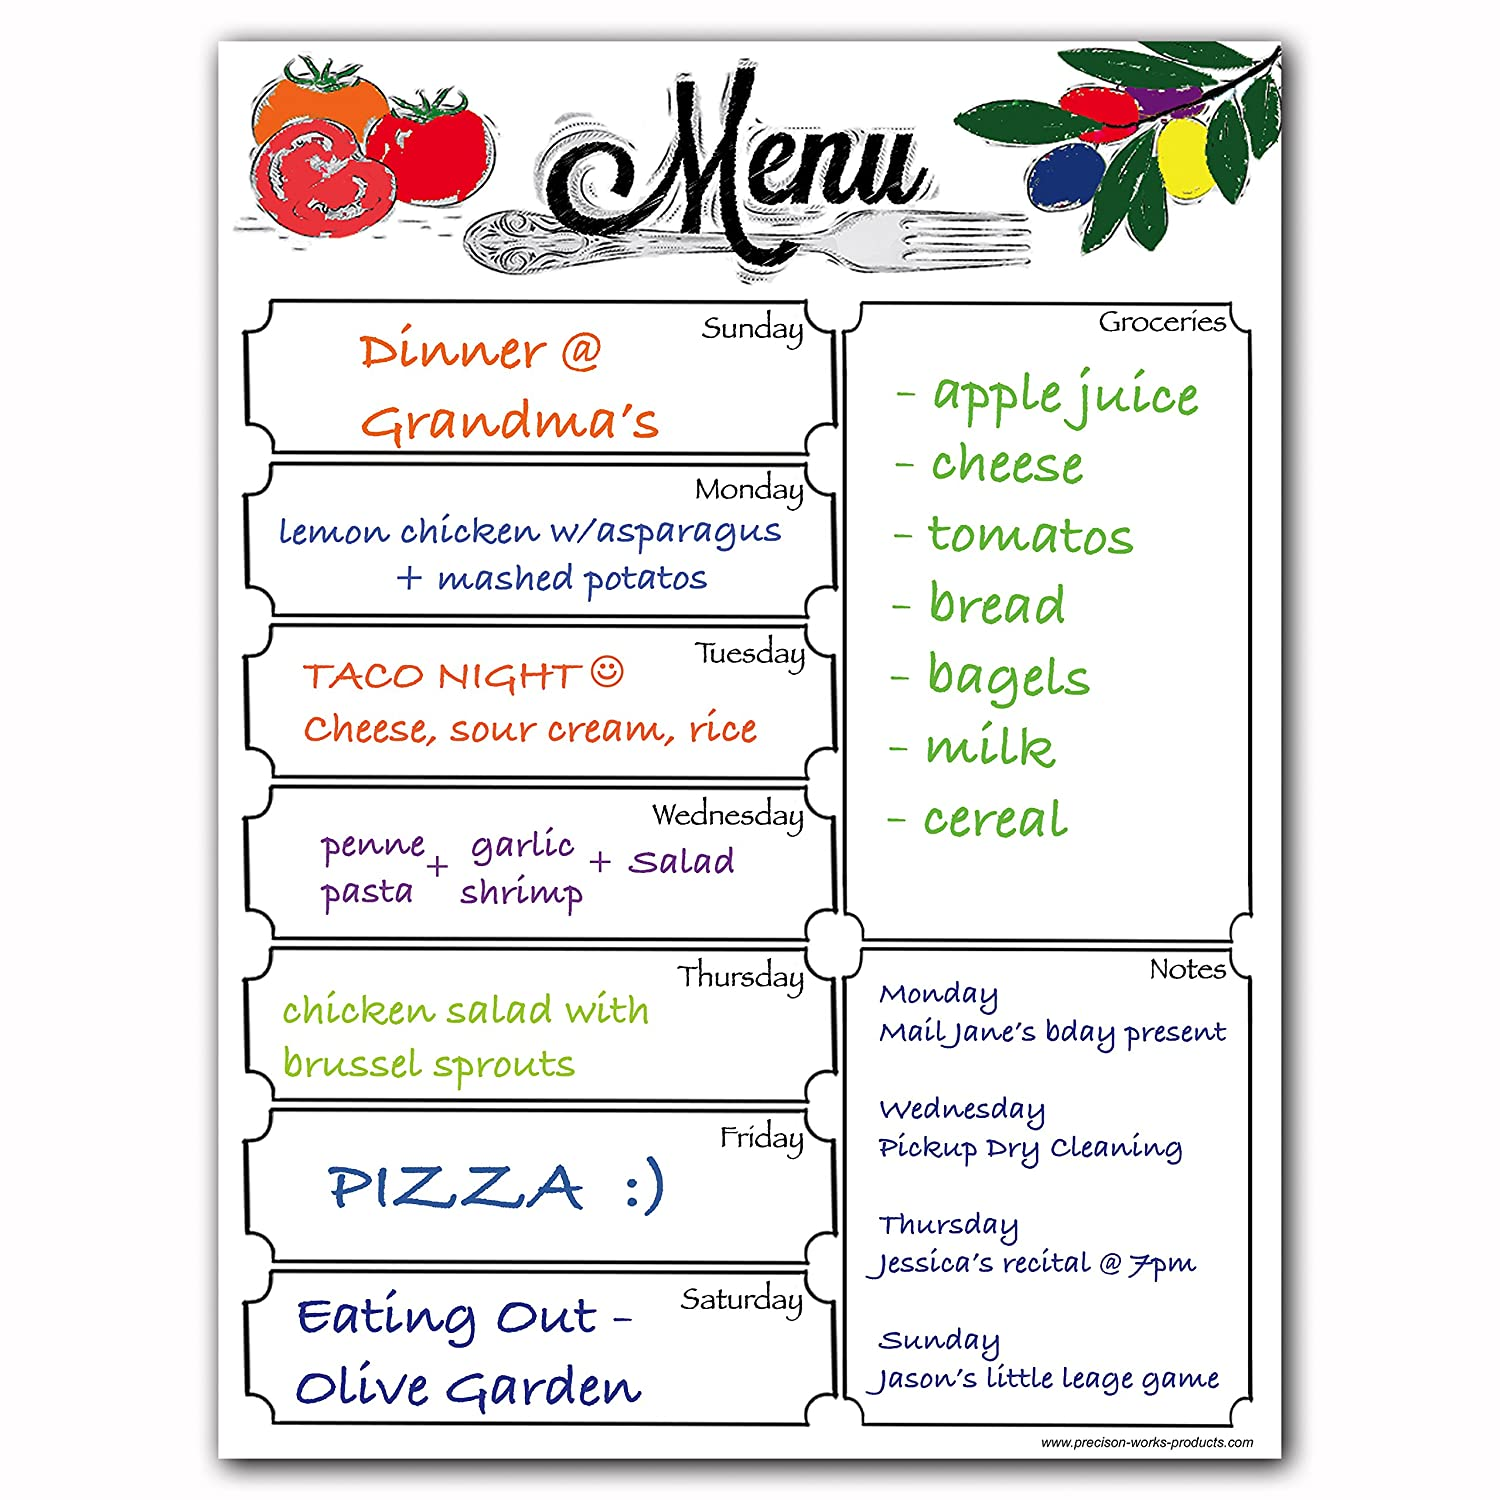 Magnetic 8 x 10 Menu Dry Erase Weekly Meal Planner Refrigerator Board With Grocery List And Notes (Faux Chalkboard Background) Precision Works